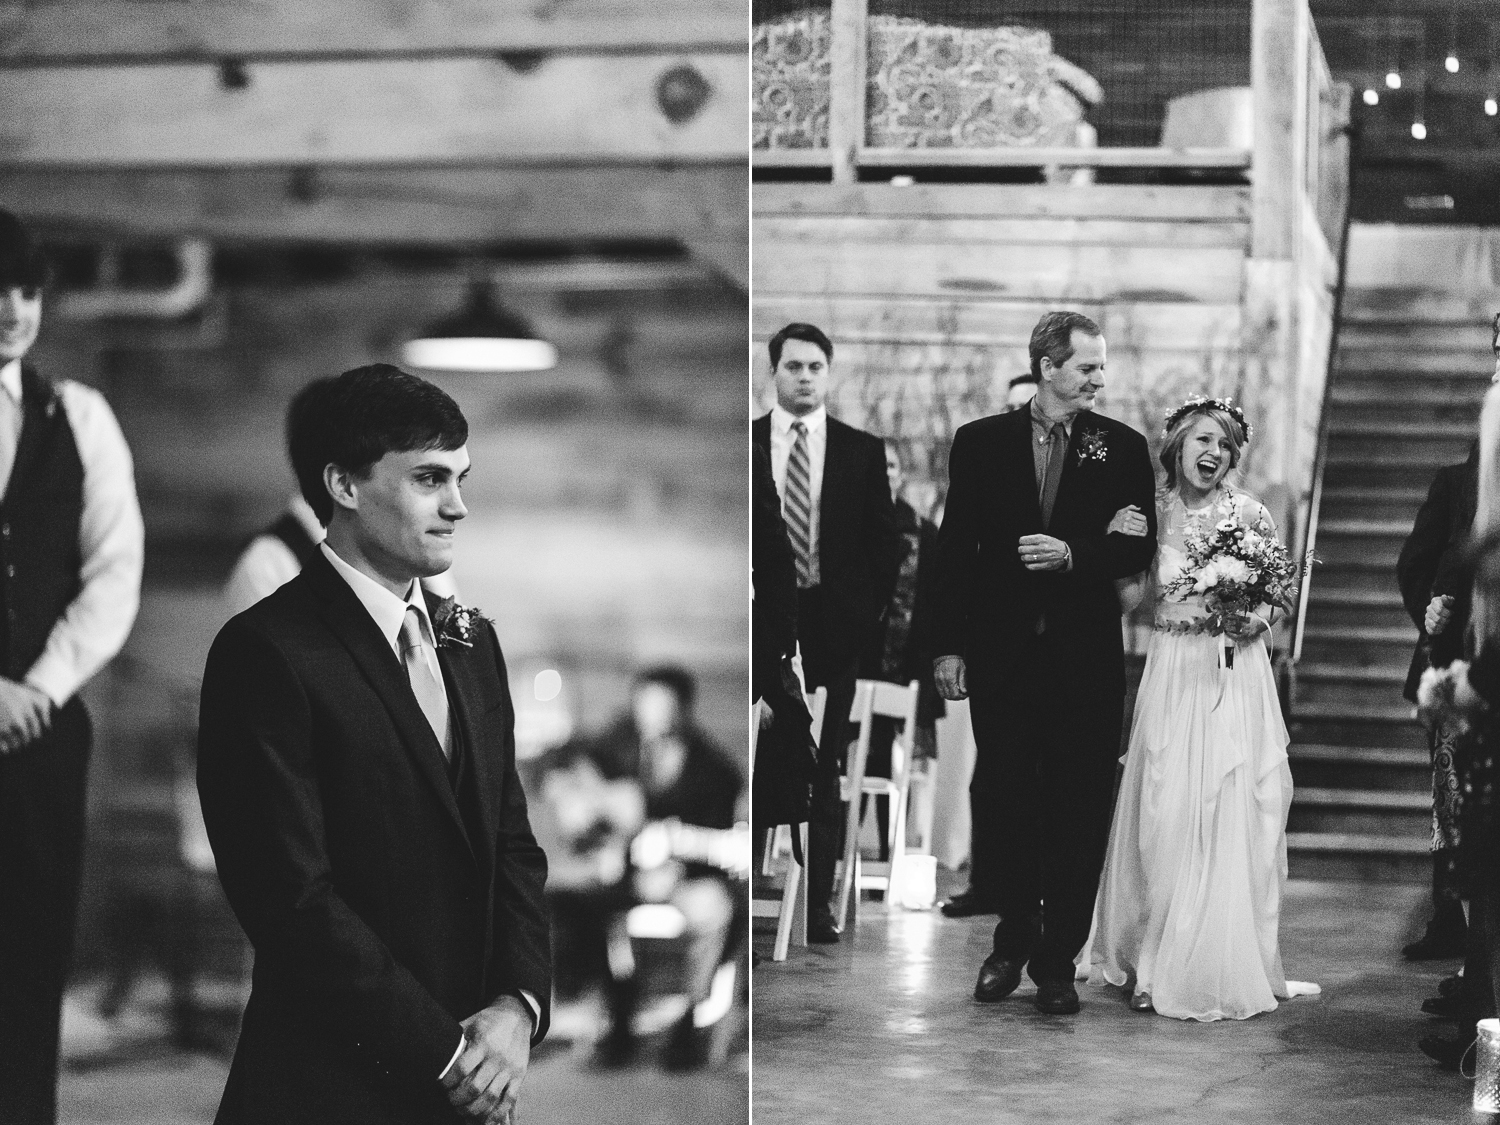 groom first sees his bride walk down the aisle